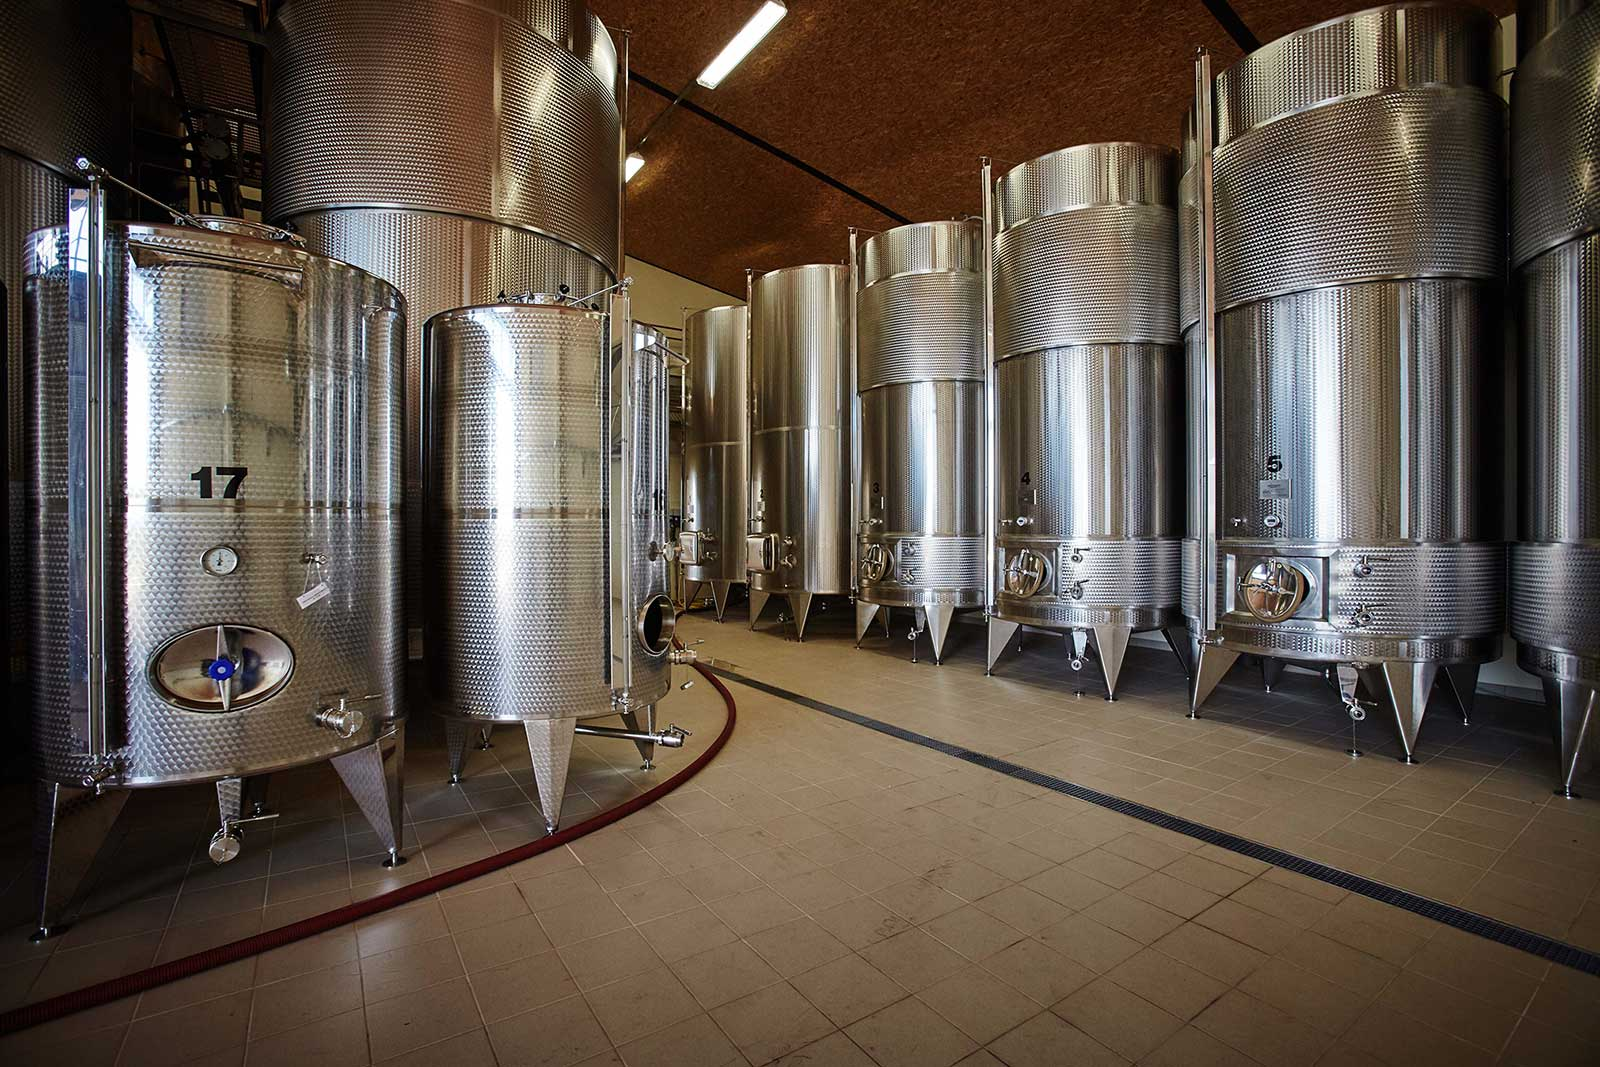 Fermentation tanks at Montonale, one of Lugana's wineries. Lugana DOC is often fermented in stainless steel. ©Montonale